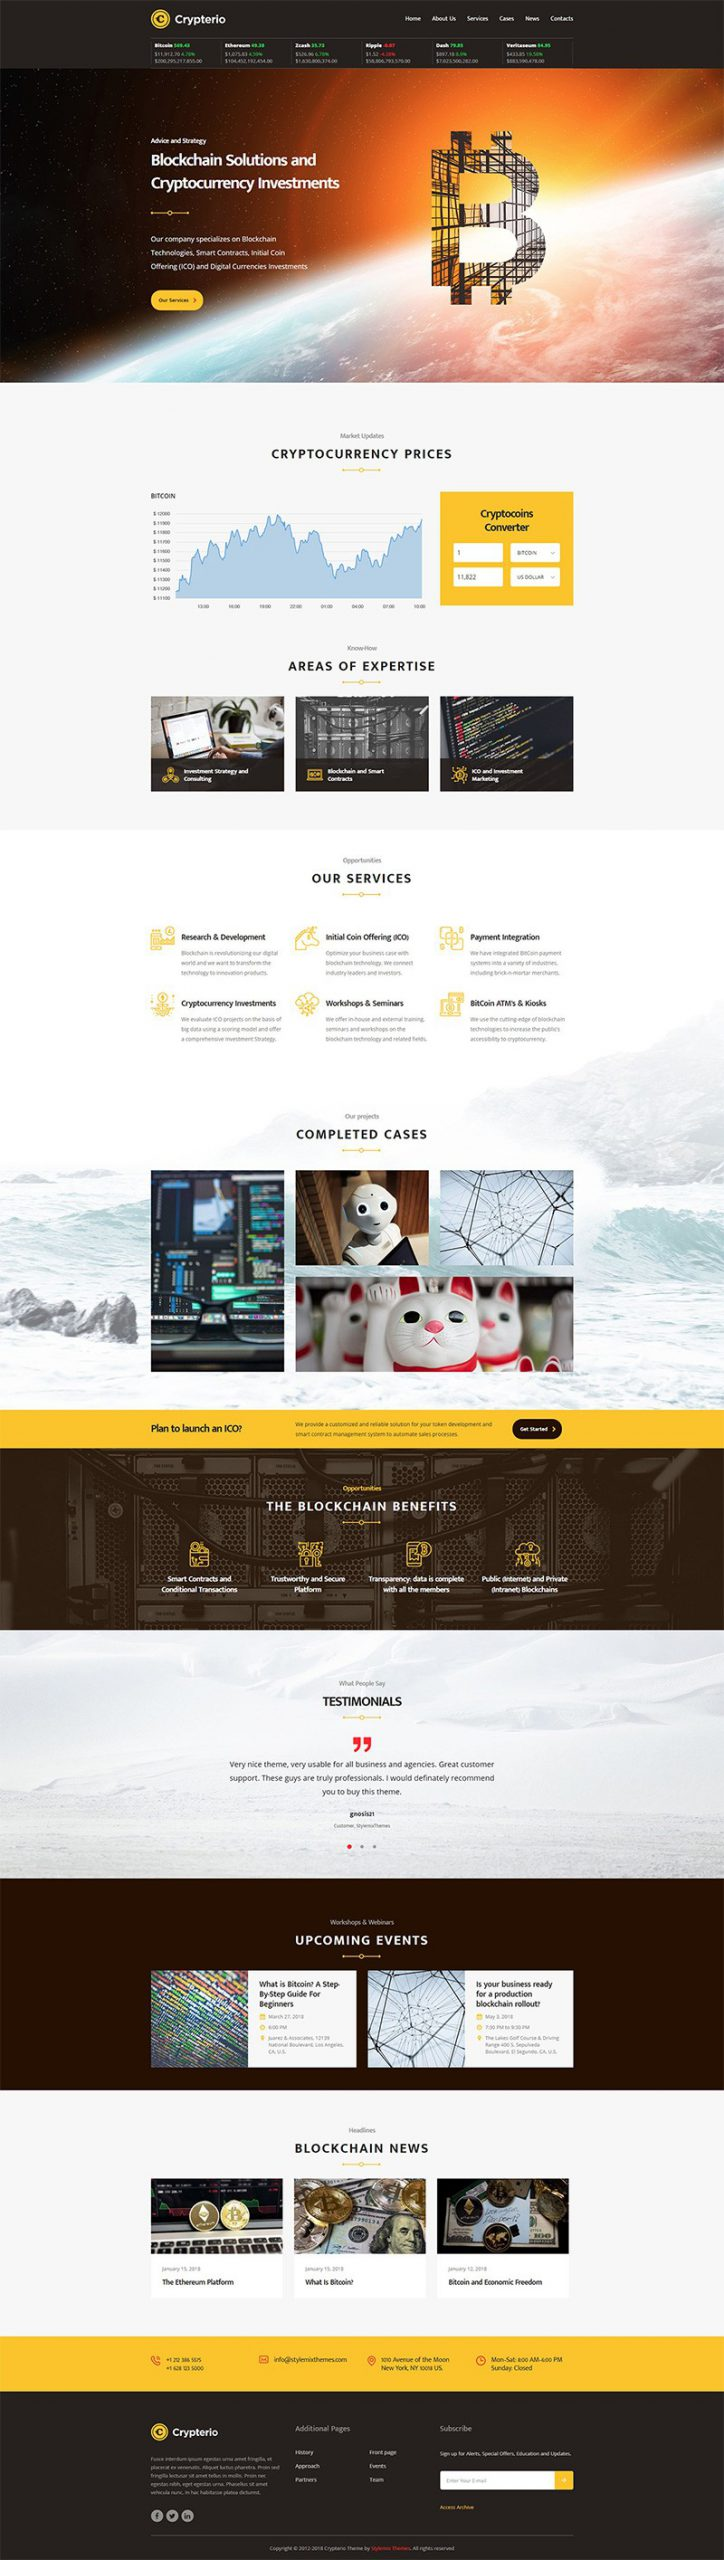 Giao diện website doanh nghiệp Crypterio